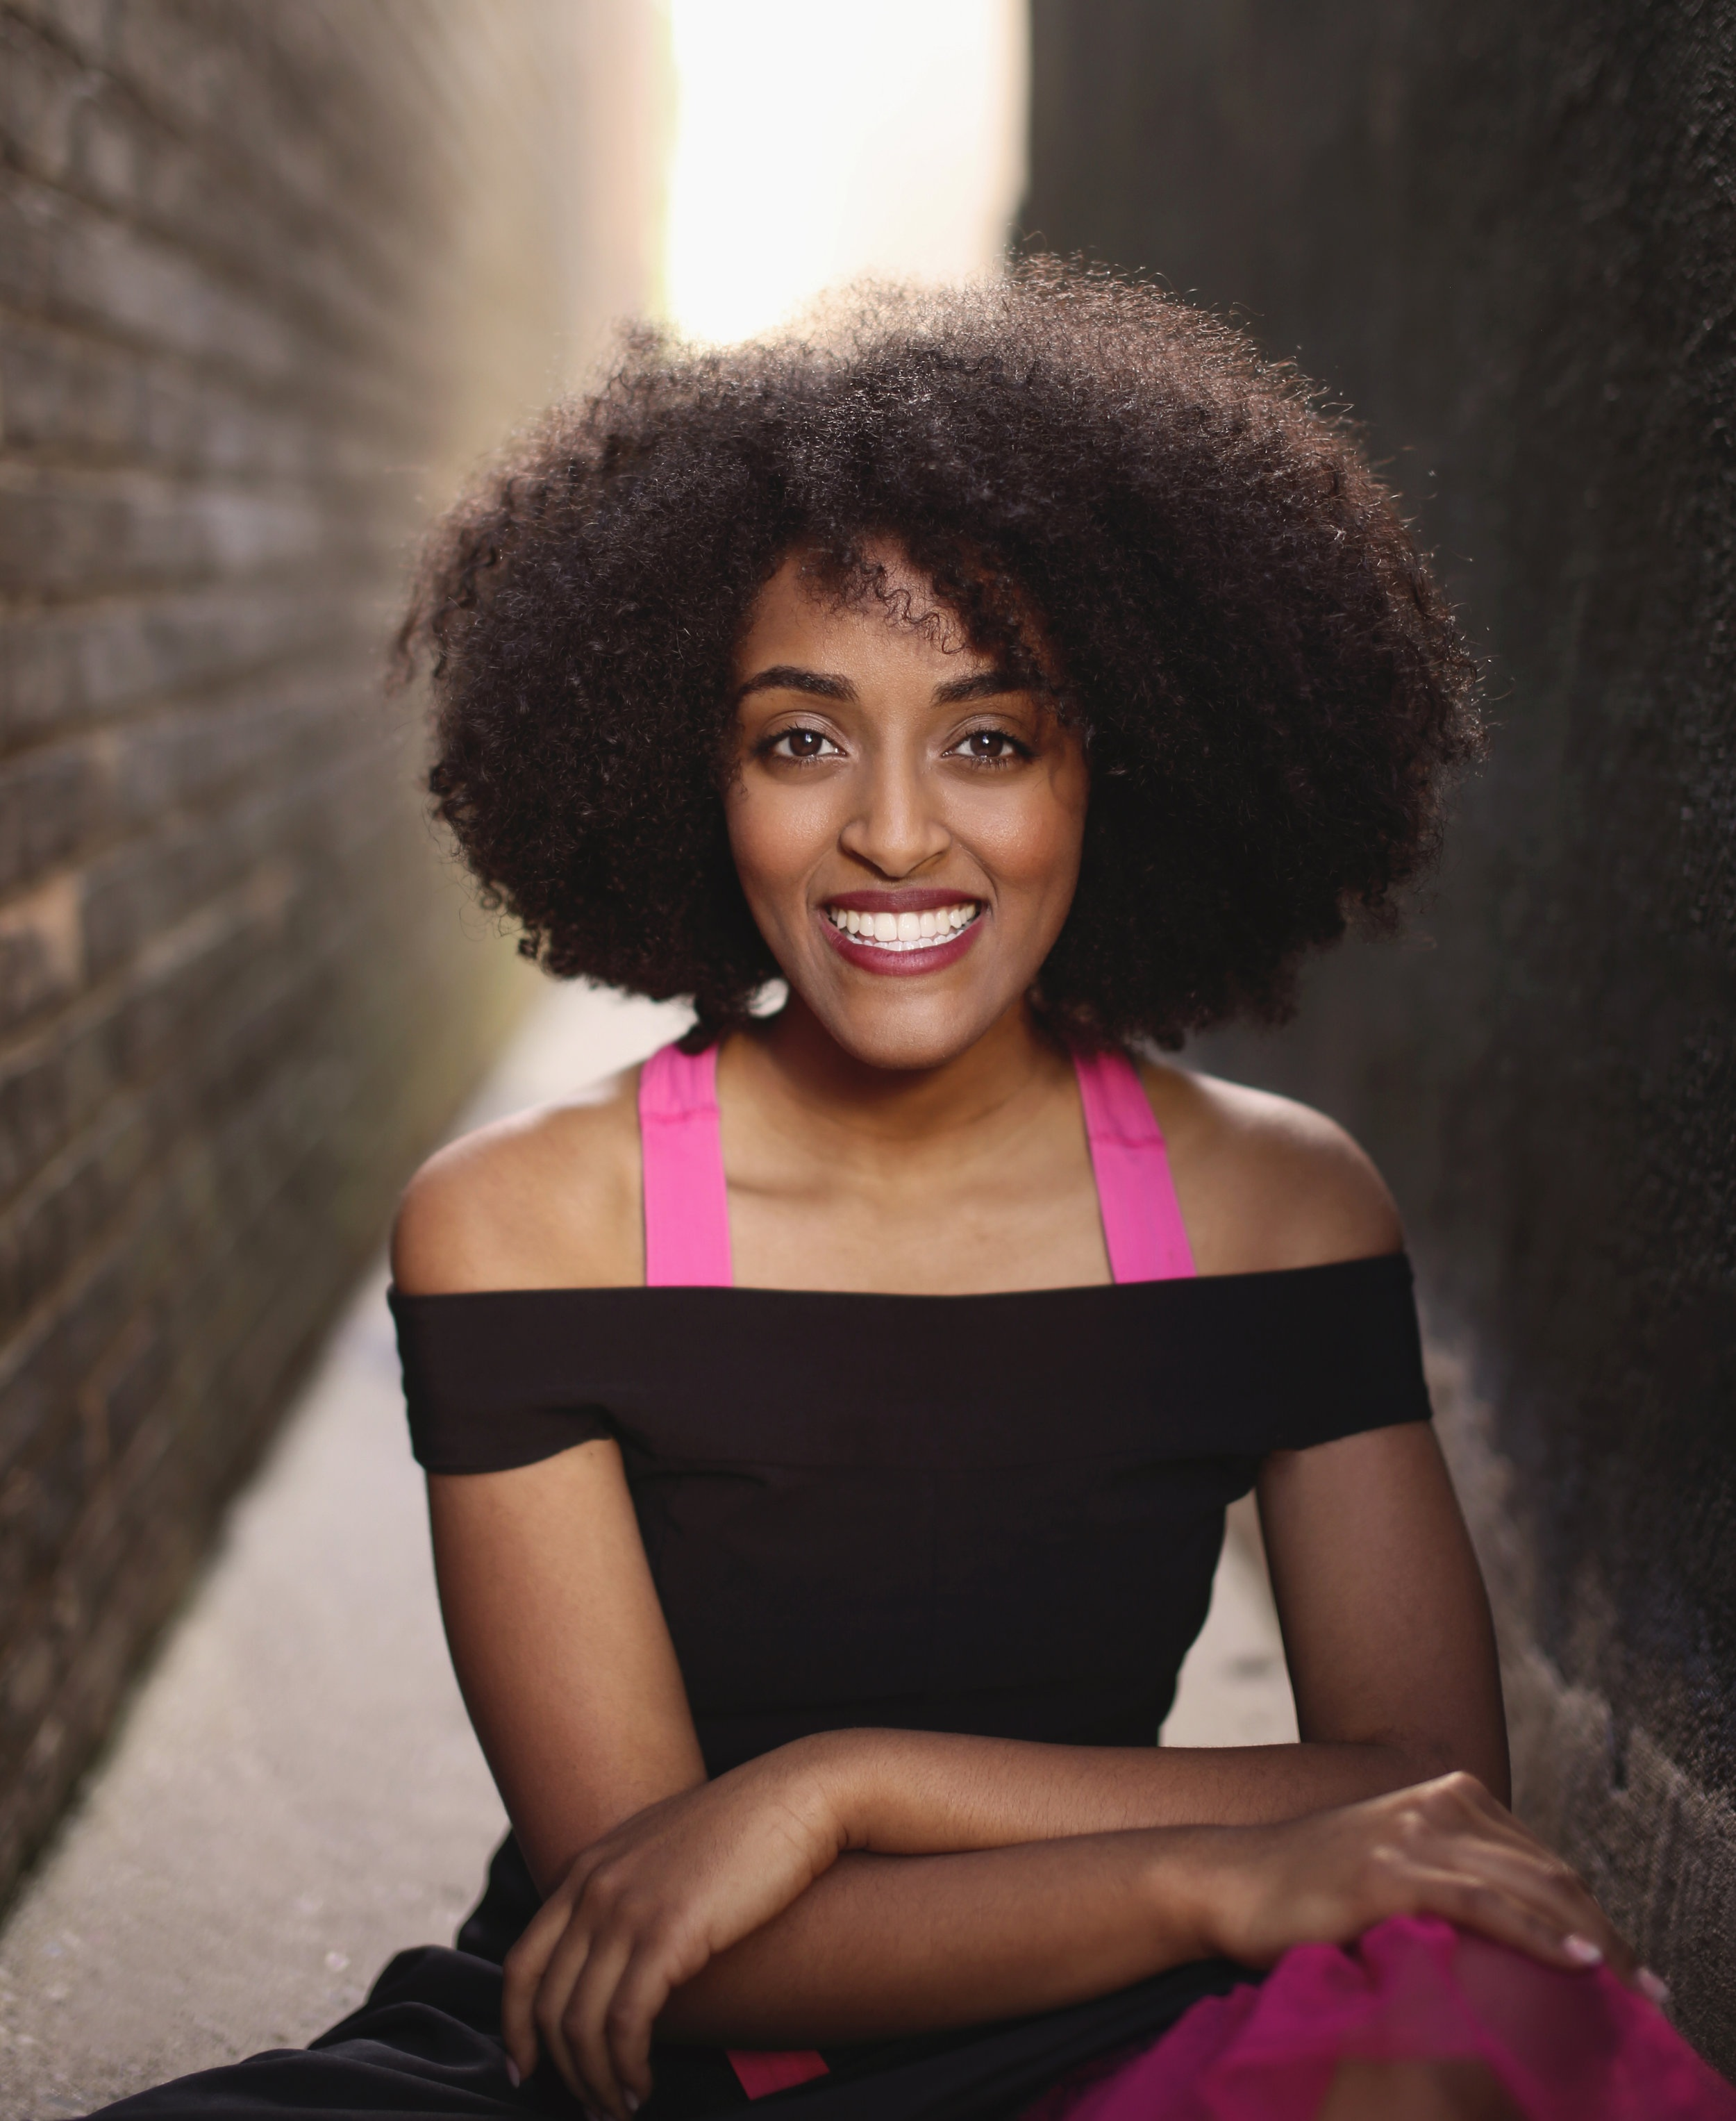 Eggie Yilma - I am a Global Studies, Public Health Double Major. I am also double minoring in Non-Profit Management and Conflict Studies.If I was to give a Ted Talk, it would be about